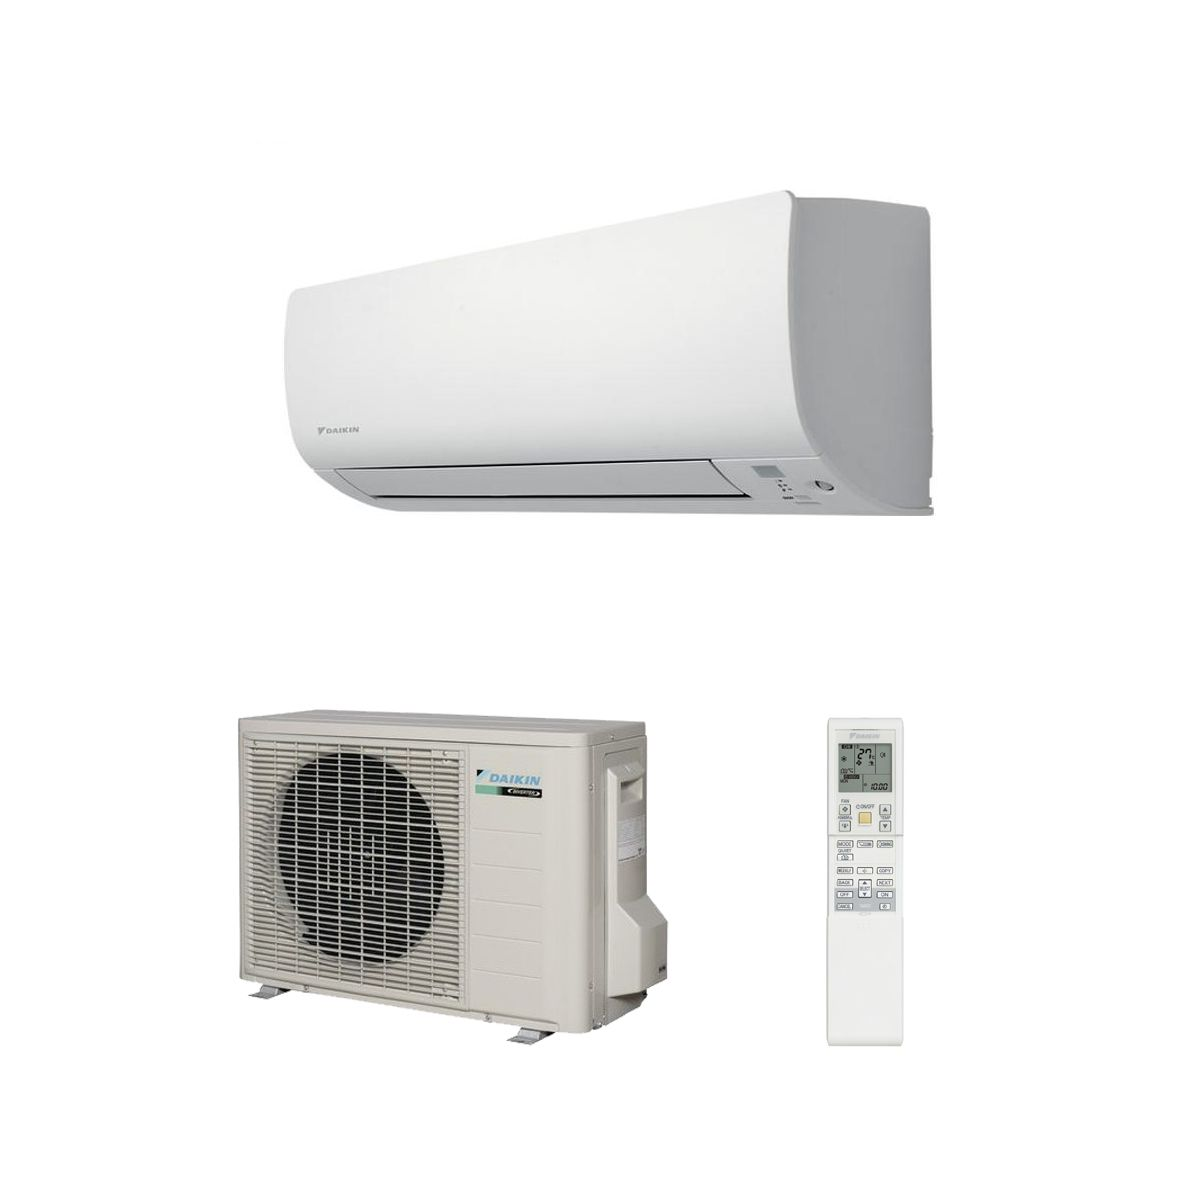 Daikin Air Conditioning Ftx71kv Wall Mounted Inverter Heat